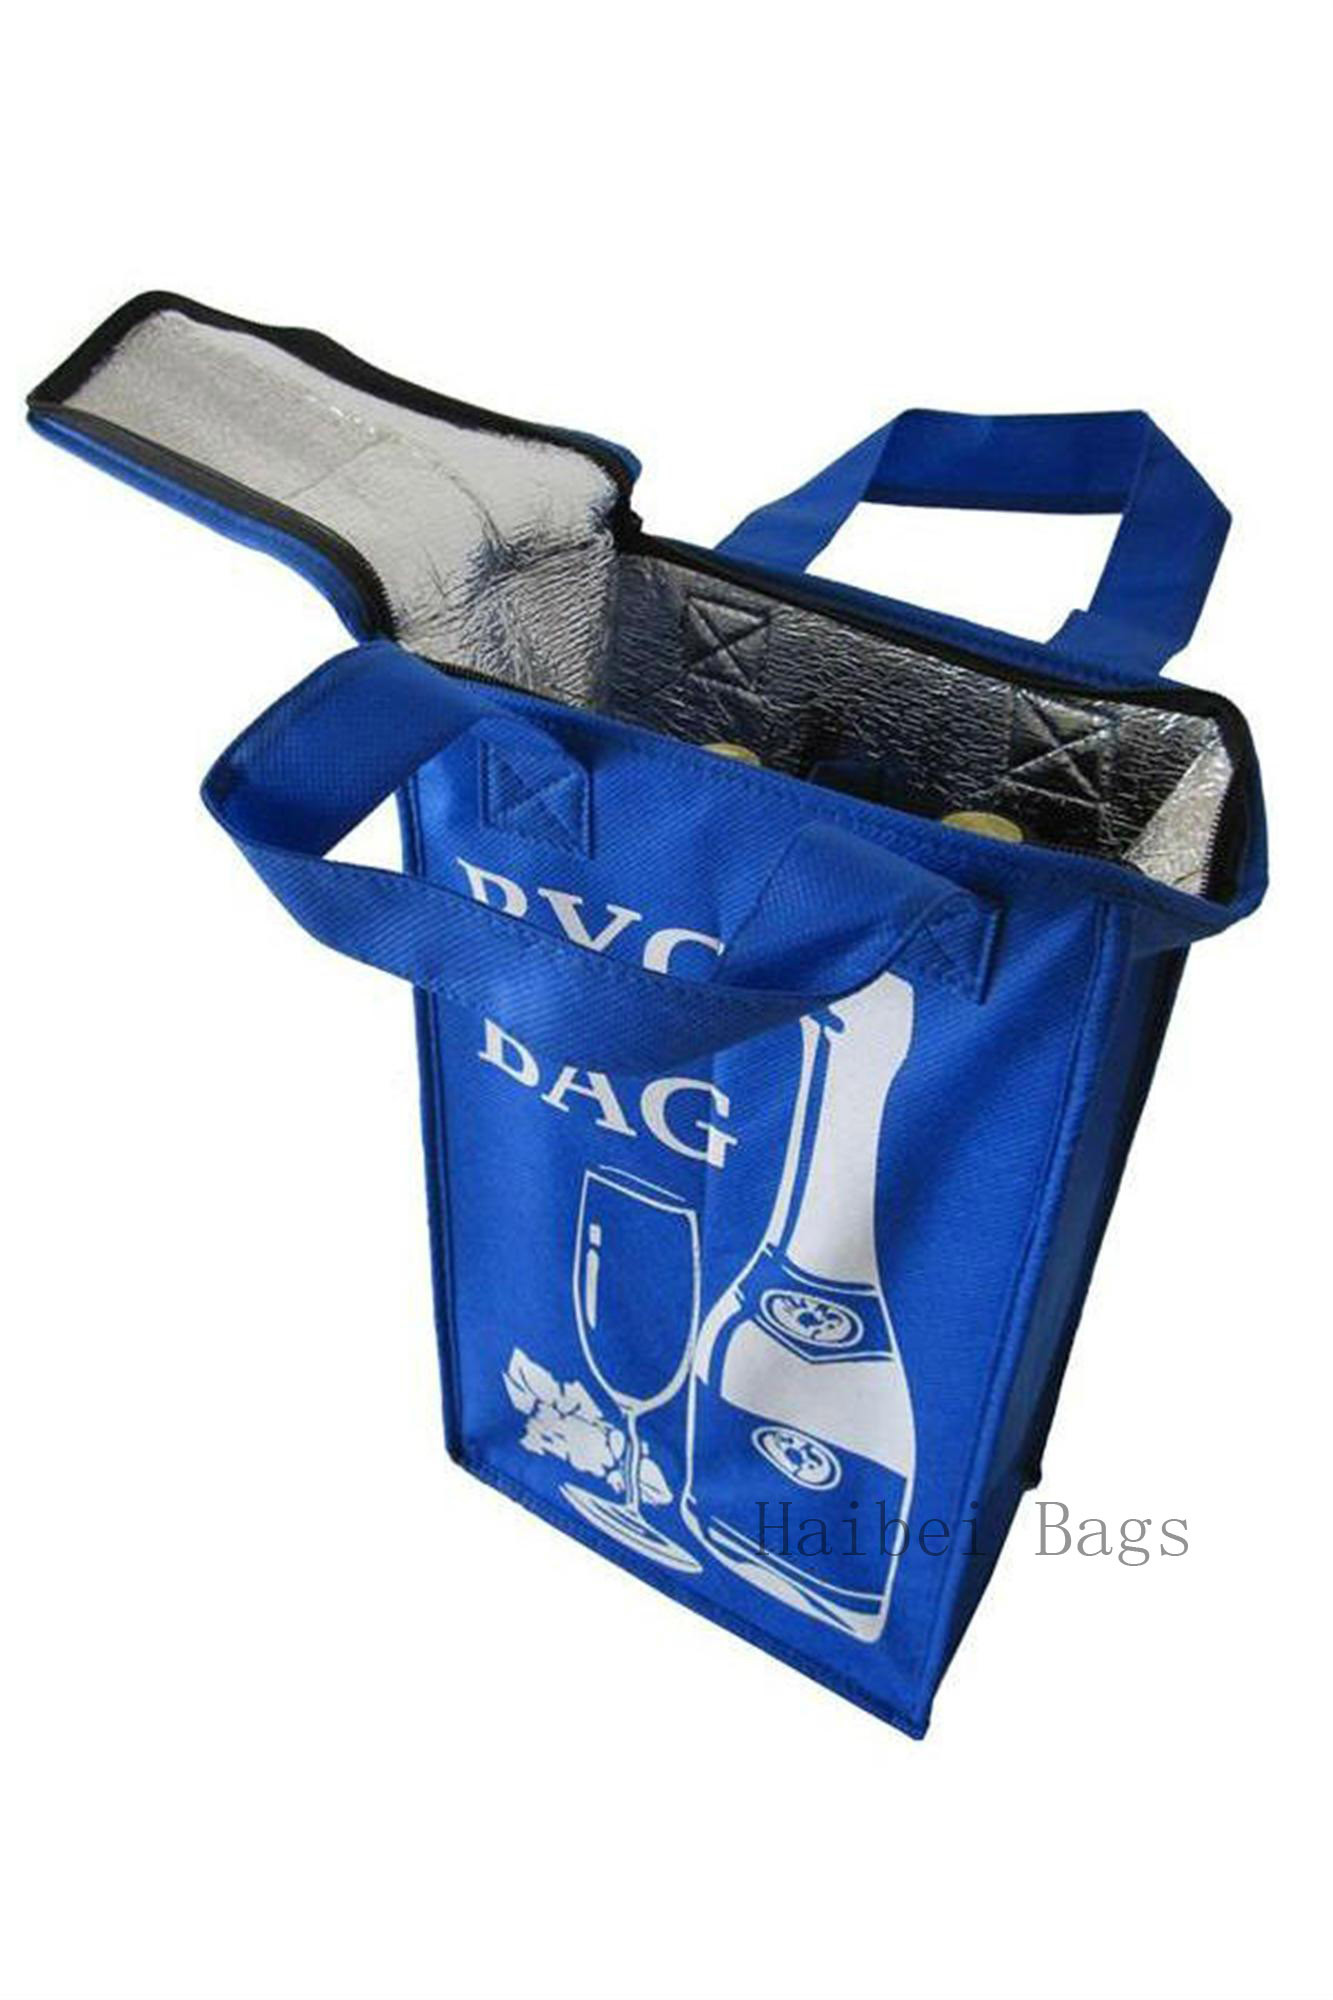 Insulated Non Woven TNT Cooler Bag, Picnic Bag, Lunch Bag, for Food, Drink Bottle, Beer Can, Ice Cooling, Shopping Box